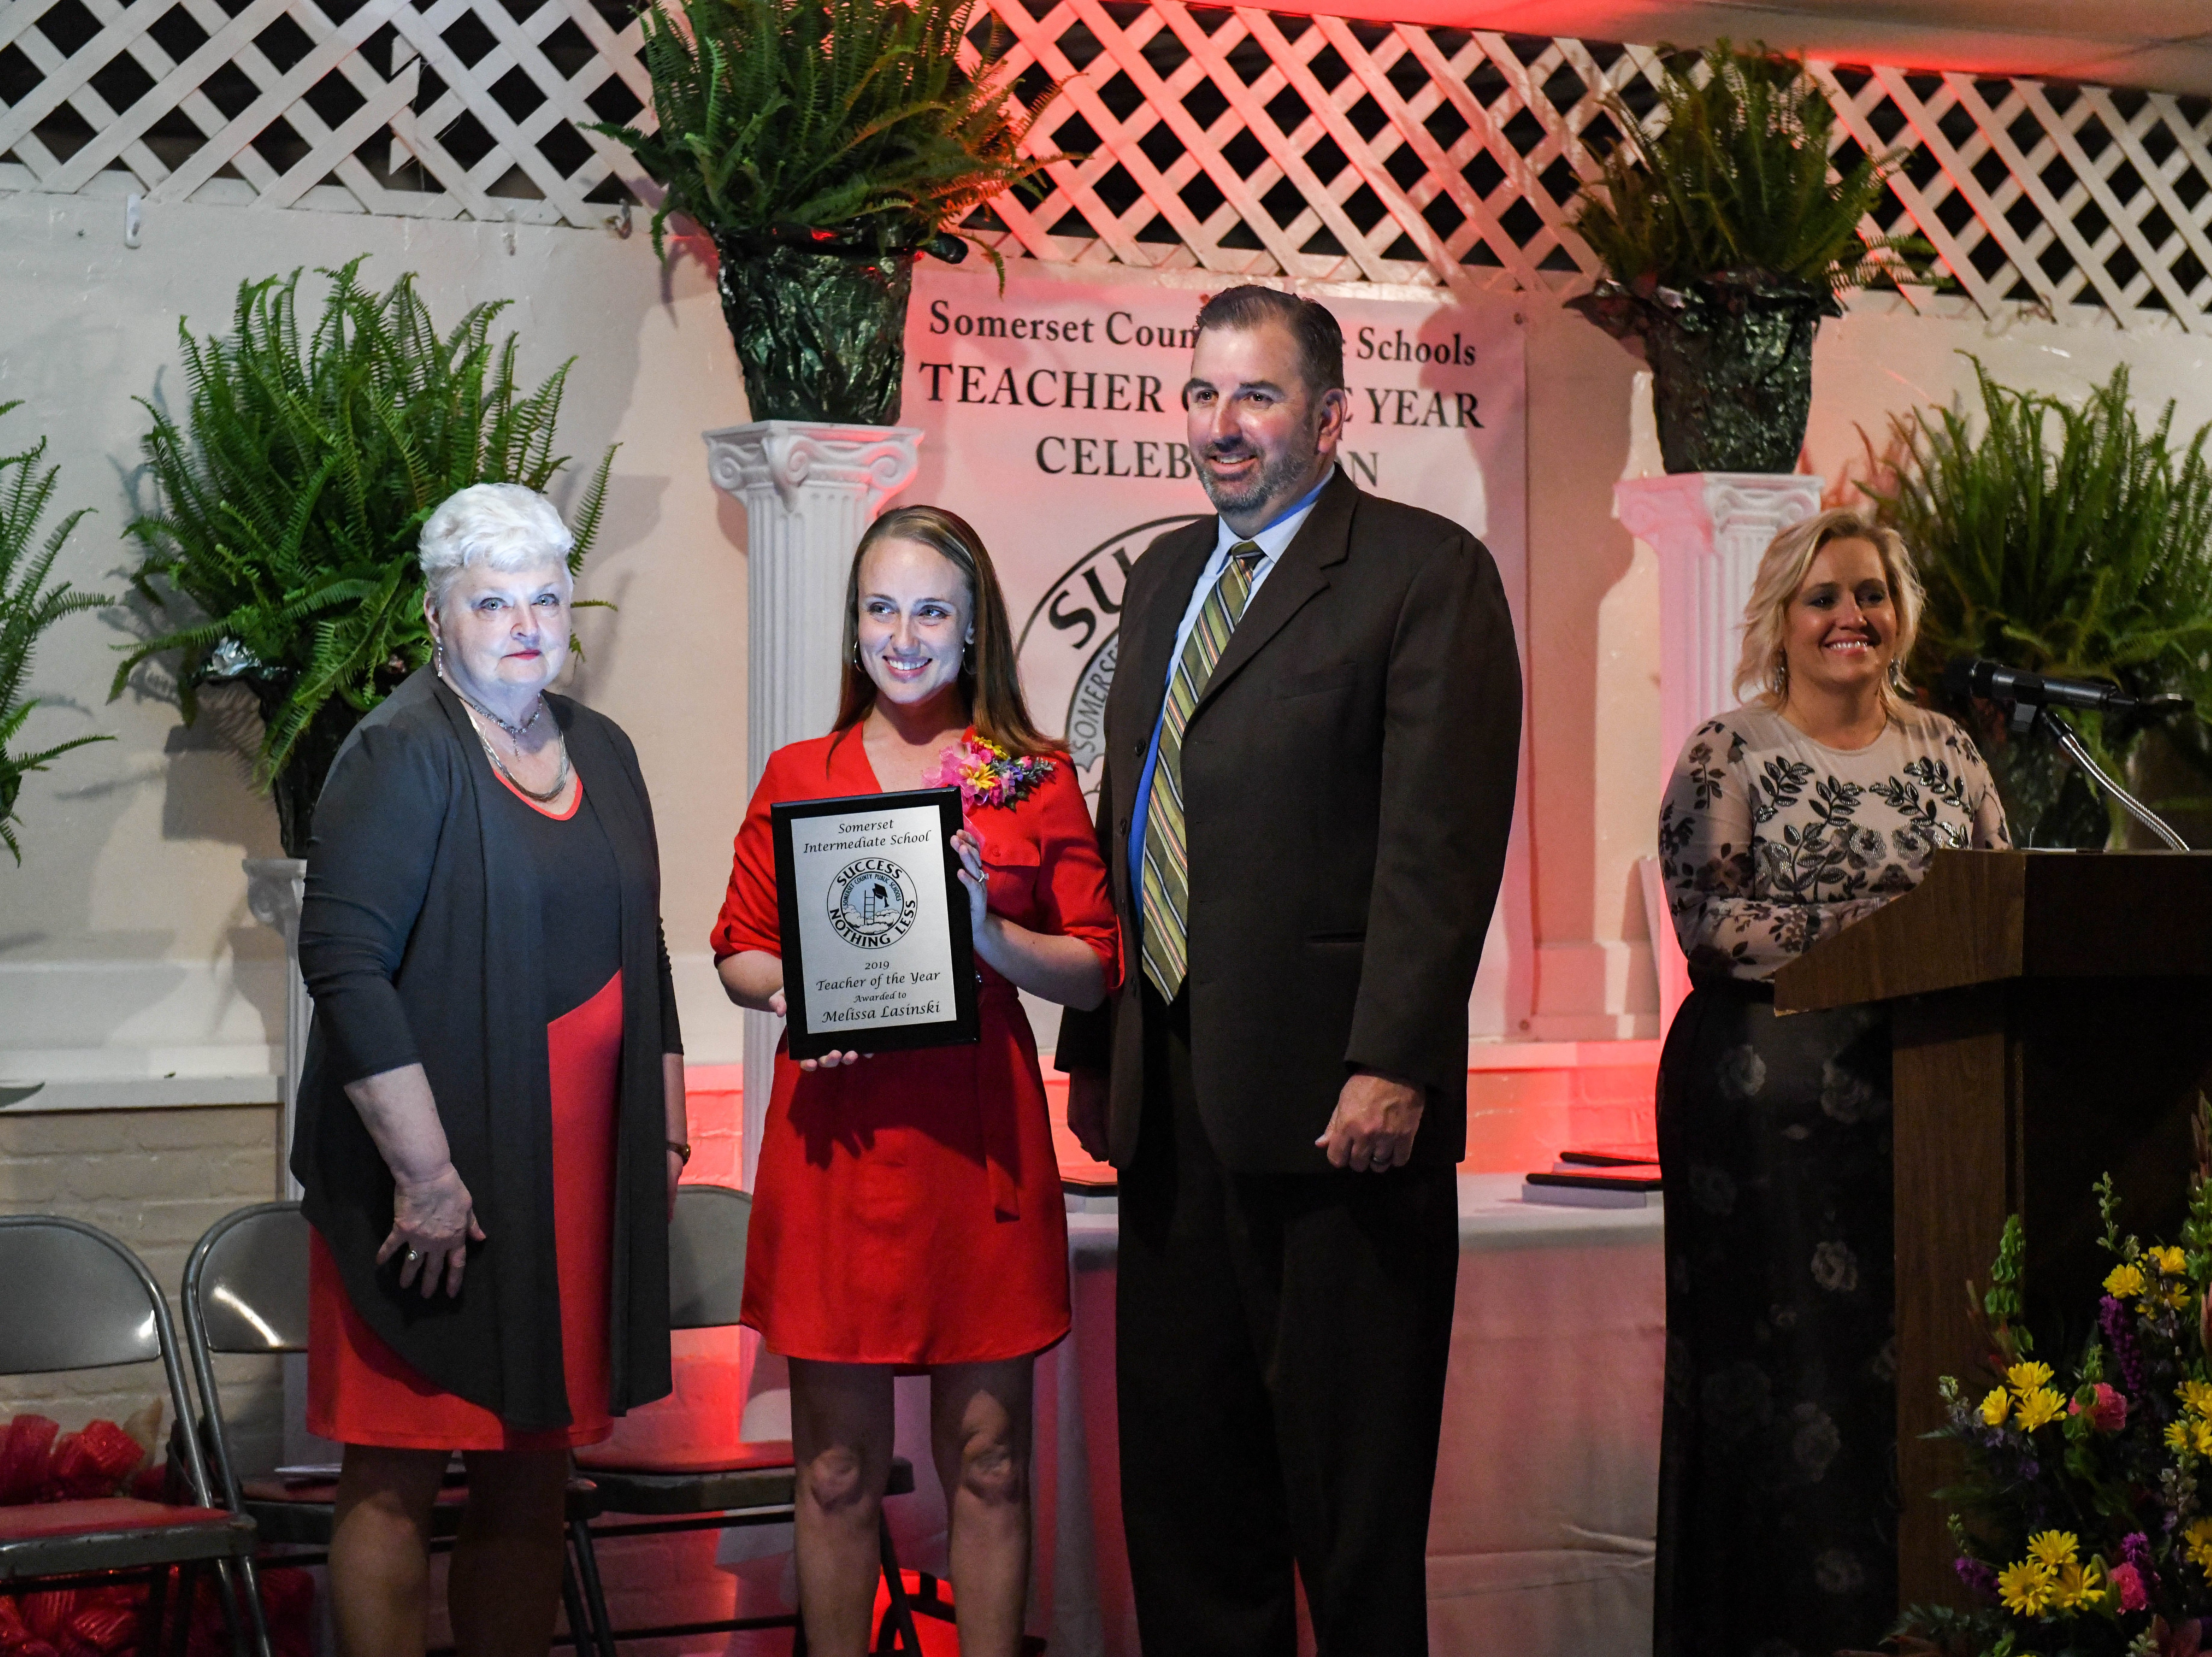 Somerset Intermediate teacher Melissa Lasinski receives a plaque for her teacher of the year nomination at the banquet on Friday, April 5, 2019.